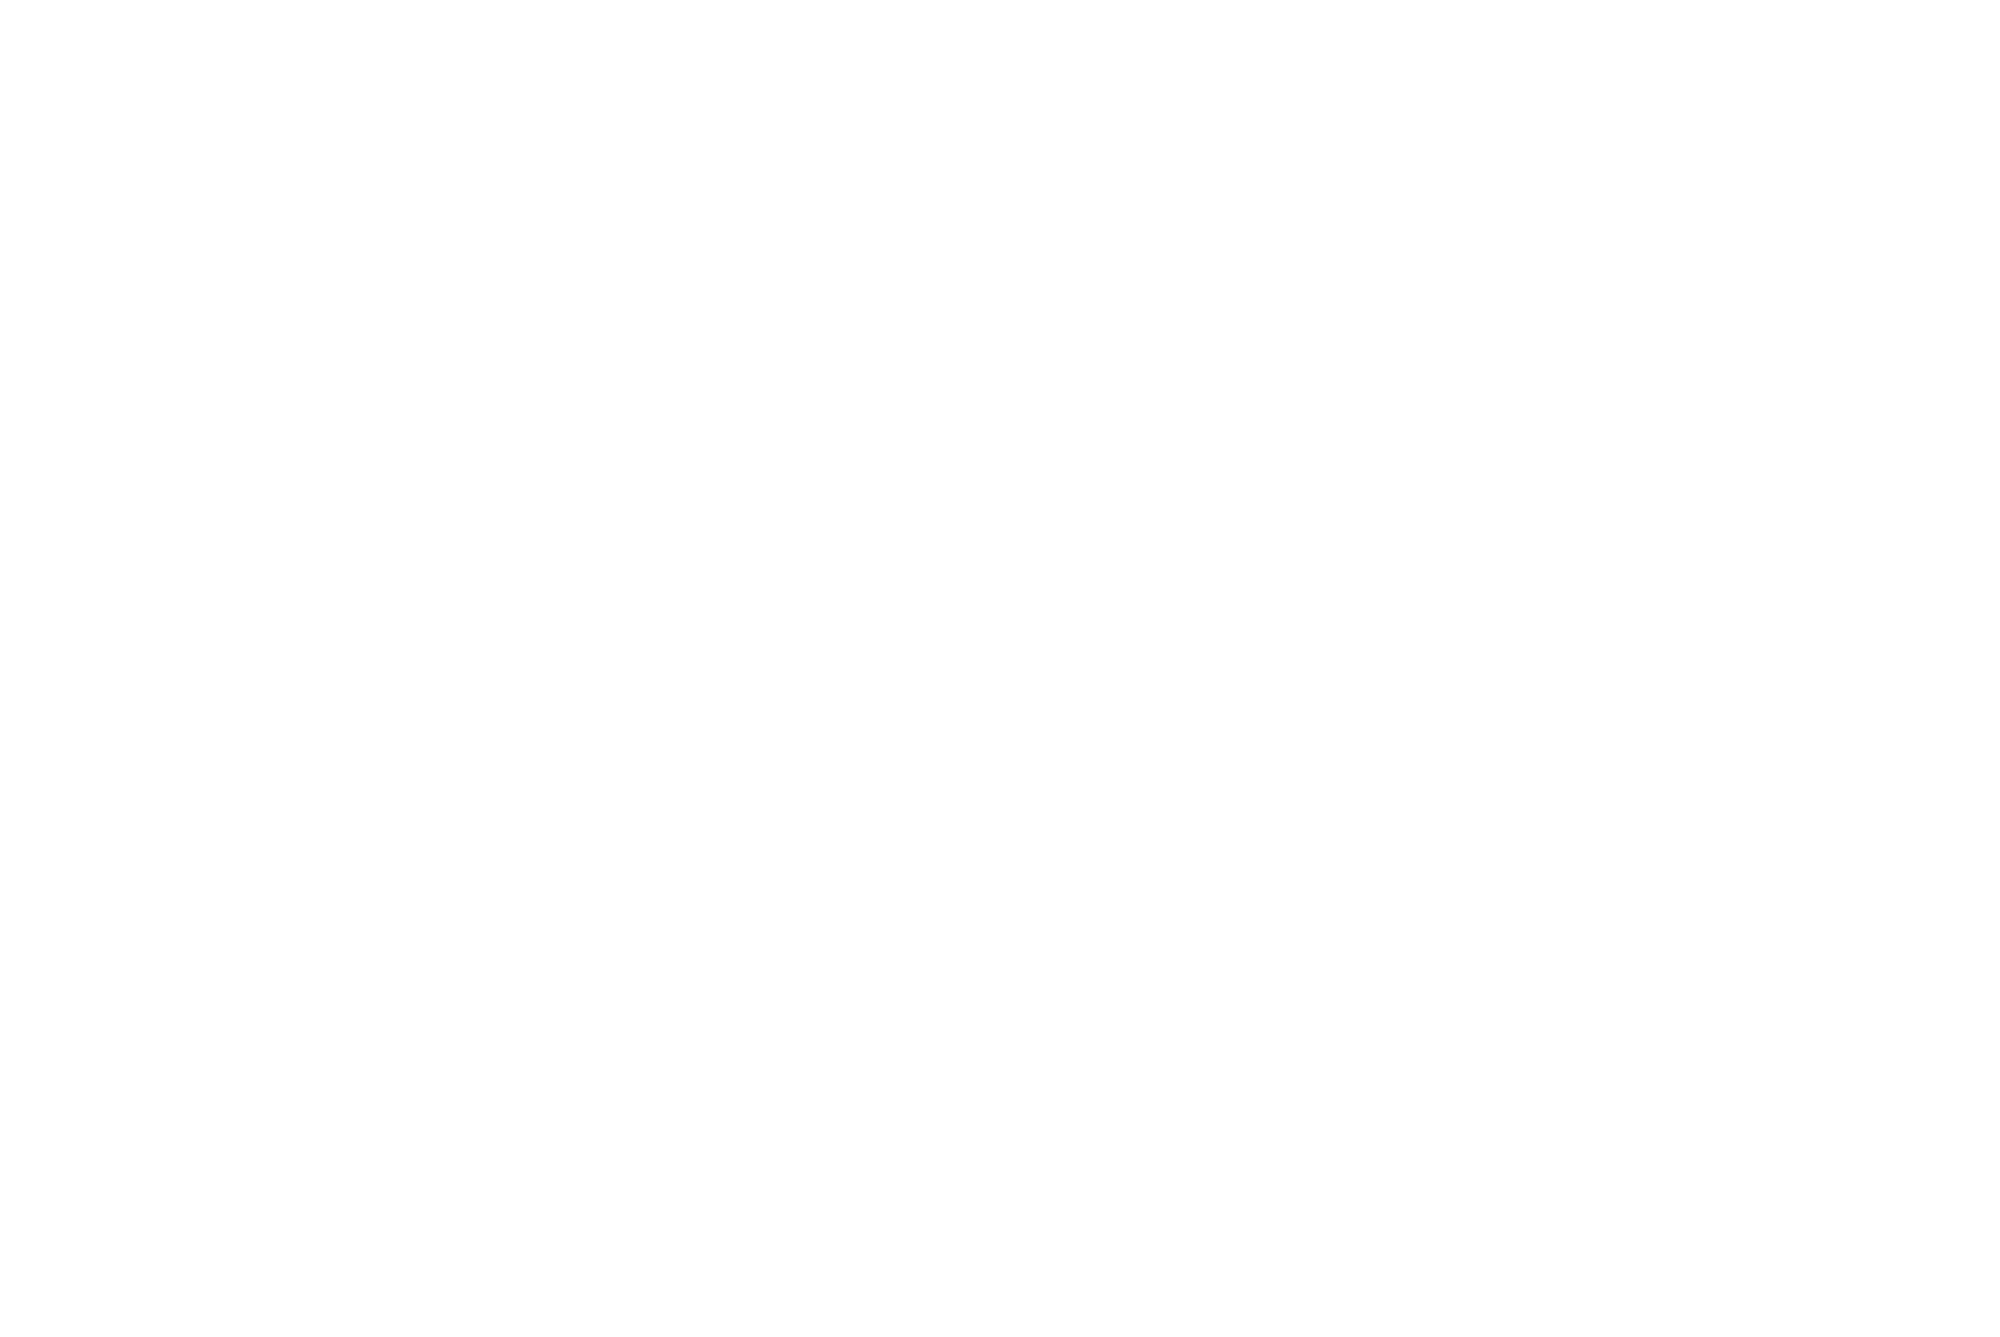 Axis A letter